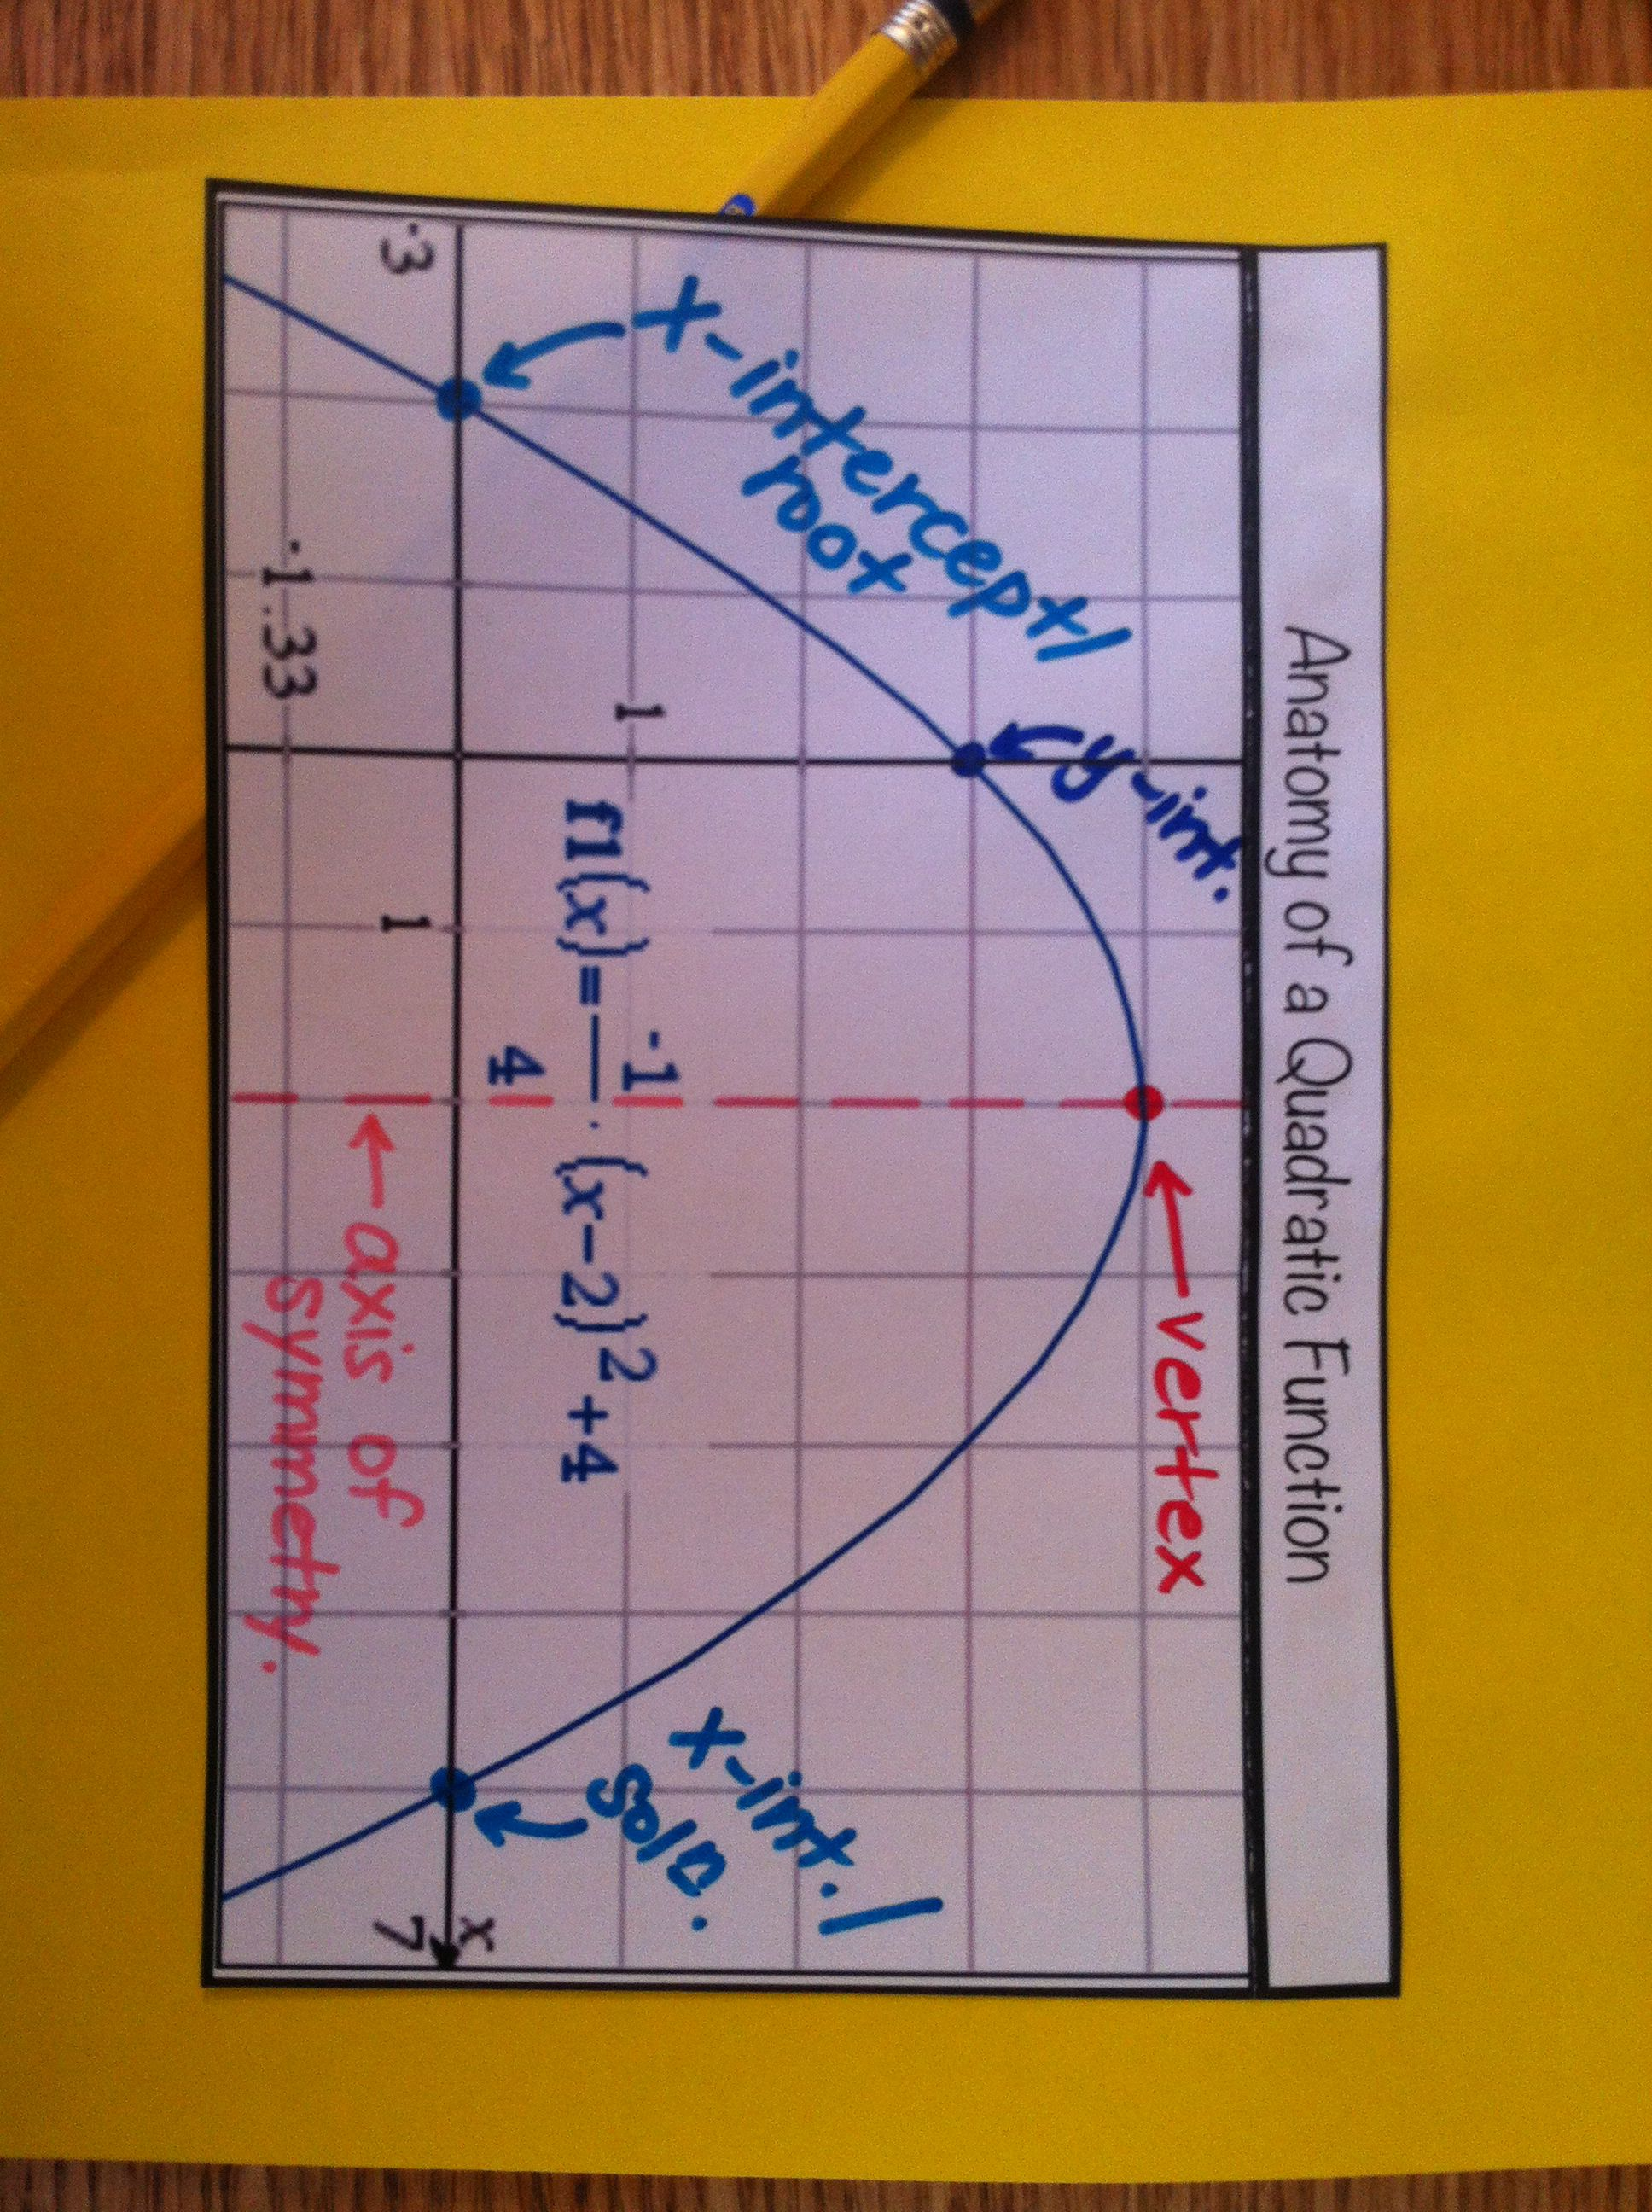 Anatomy Of A Quadratic Function 1 Tab Foldable With Room